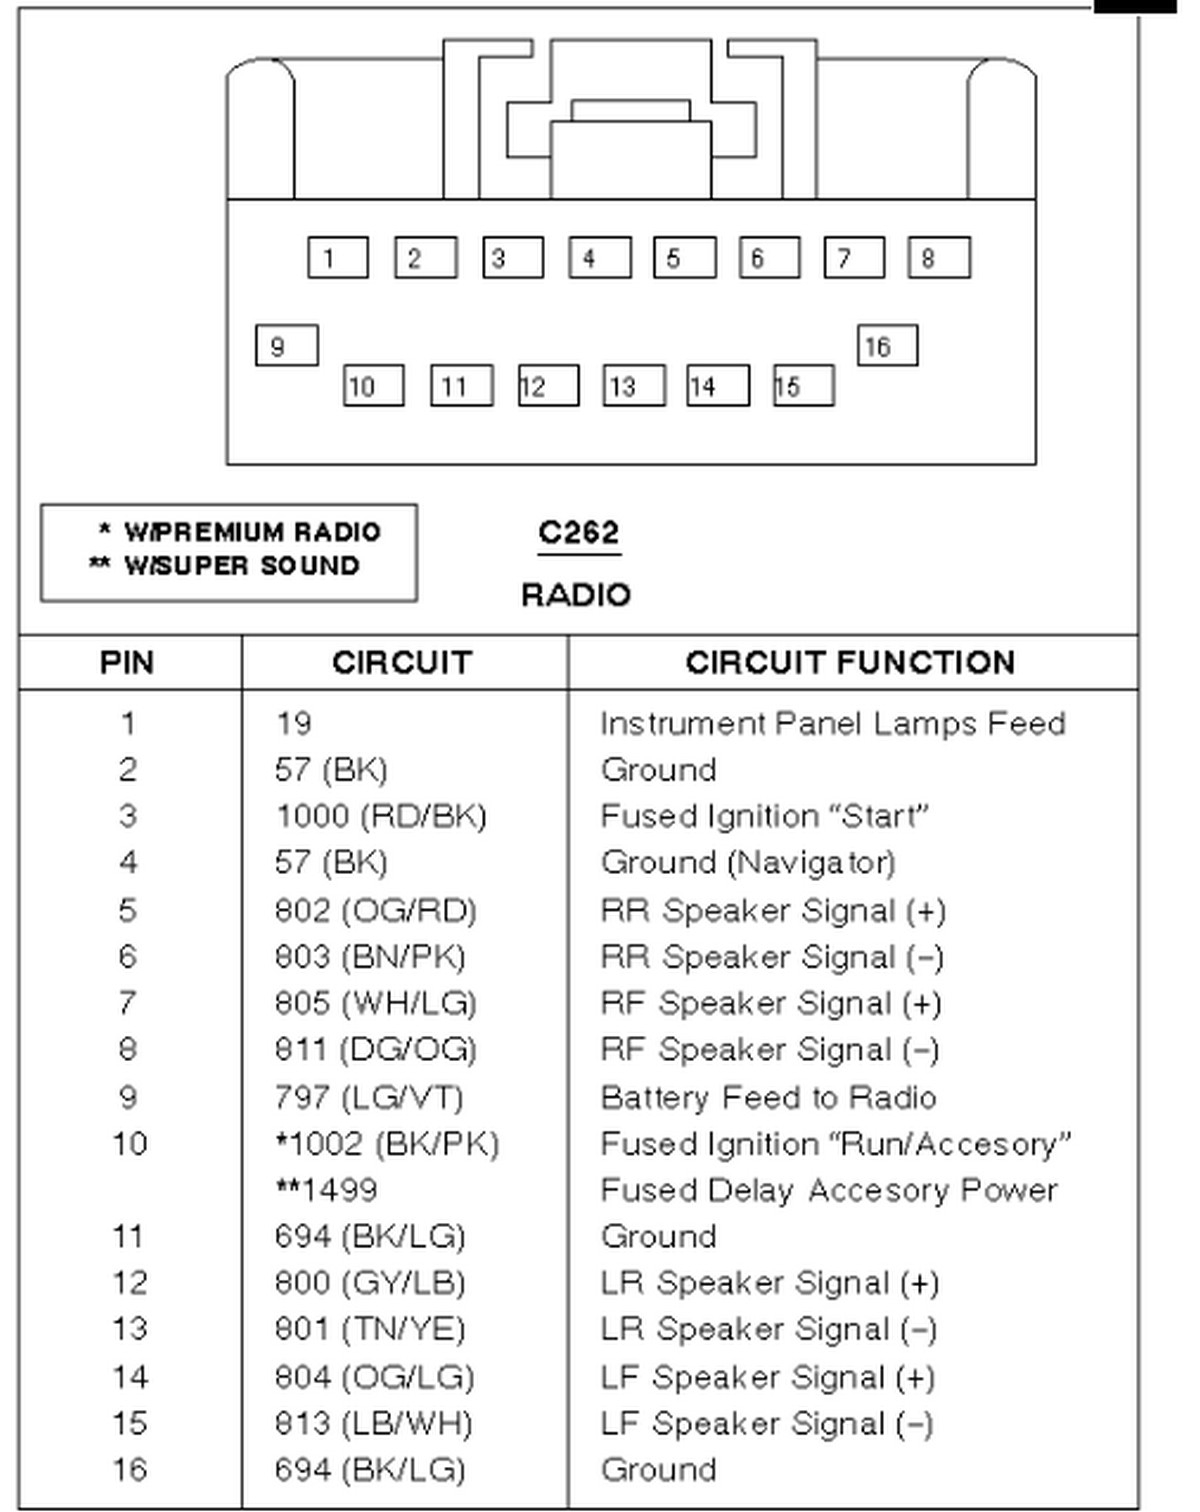 2003 ford focus radio wiring diagram Download-2003 Ford Focus Radio Wiring  Diagram 4-